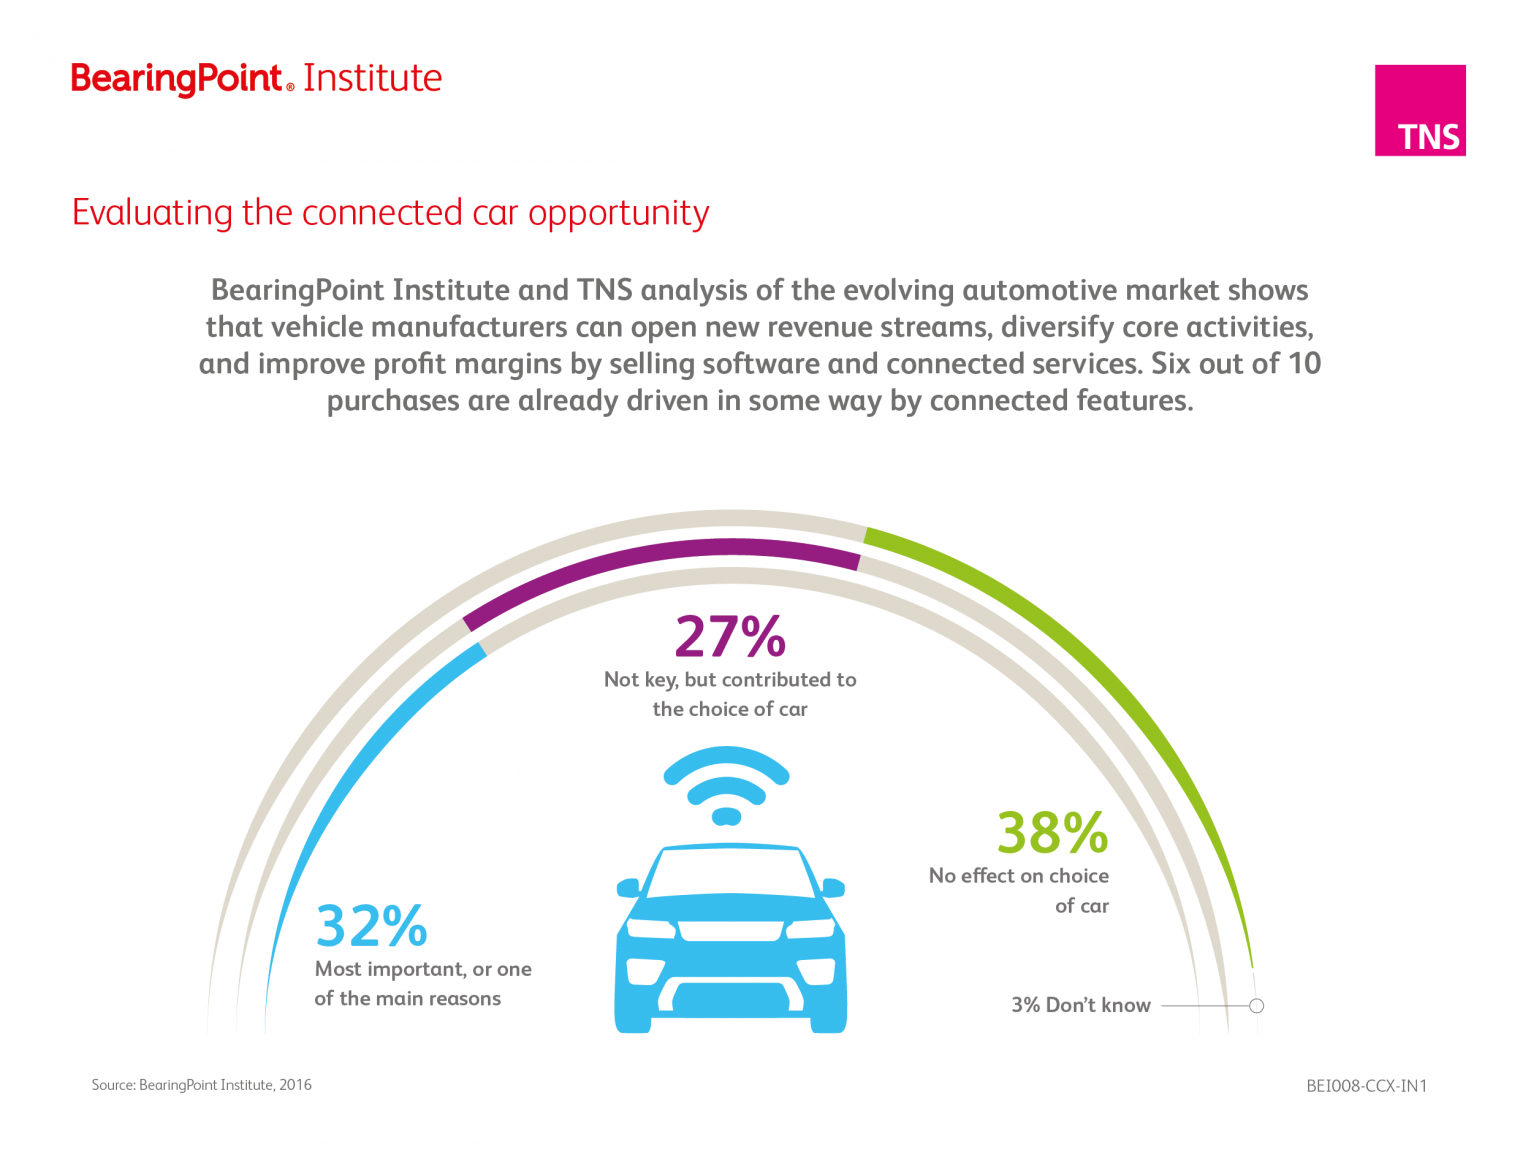 OEMs and connected-cars: time to seize the connected future